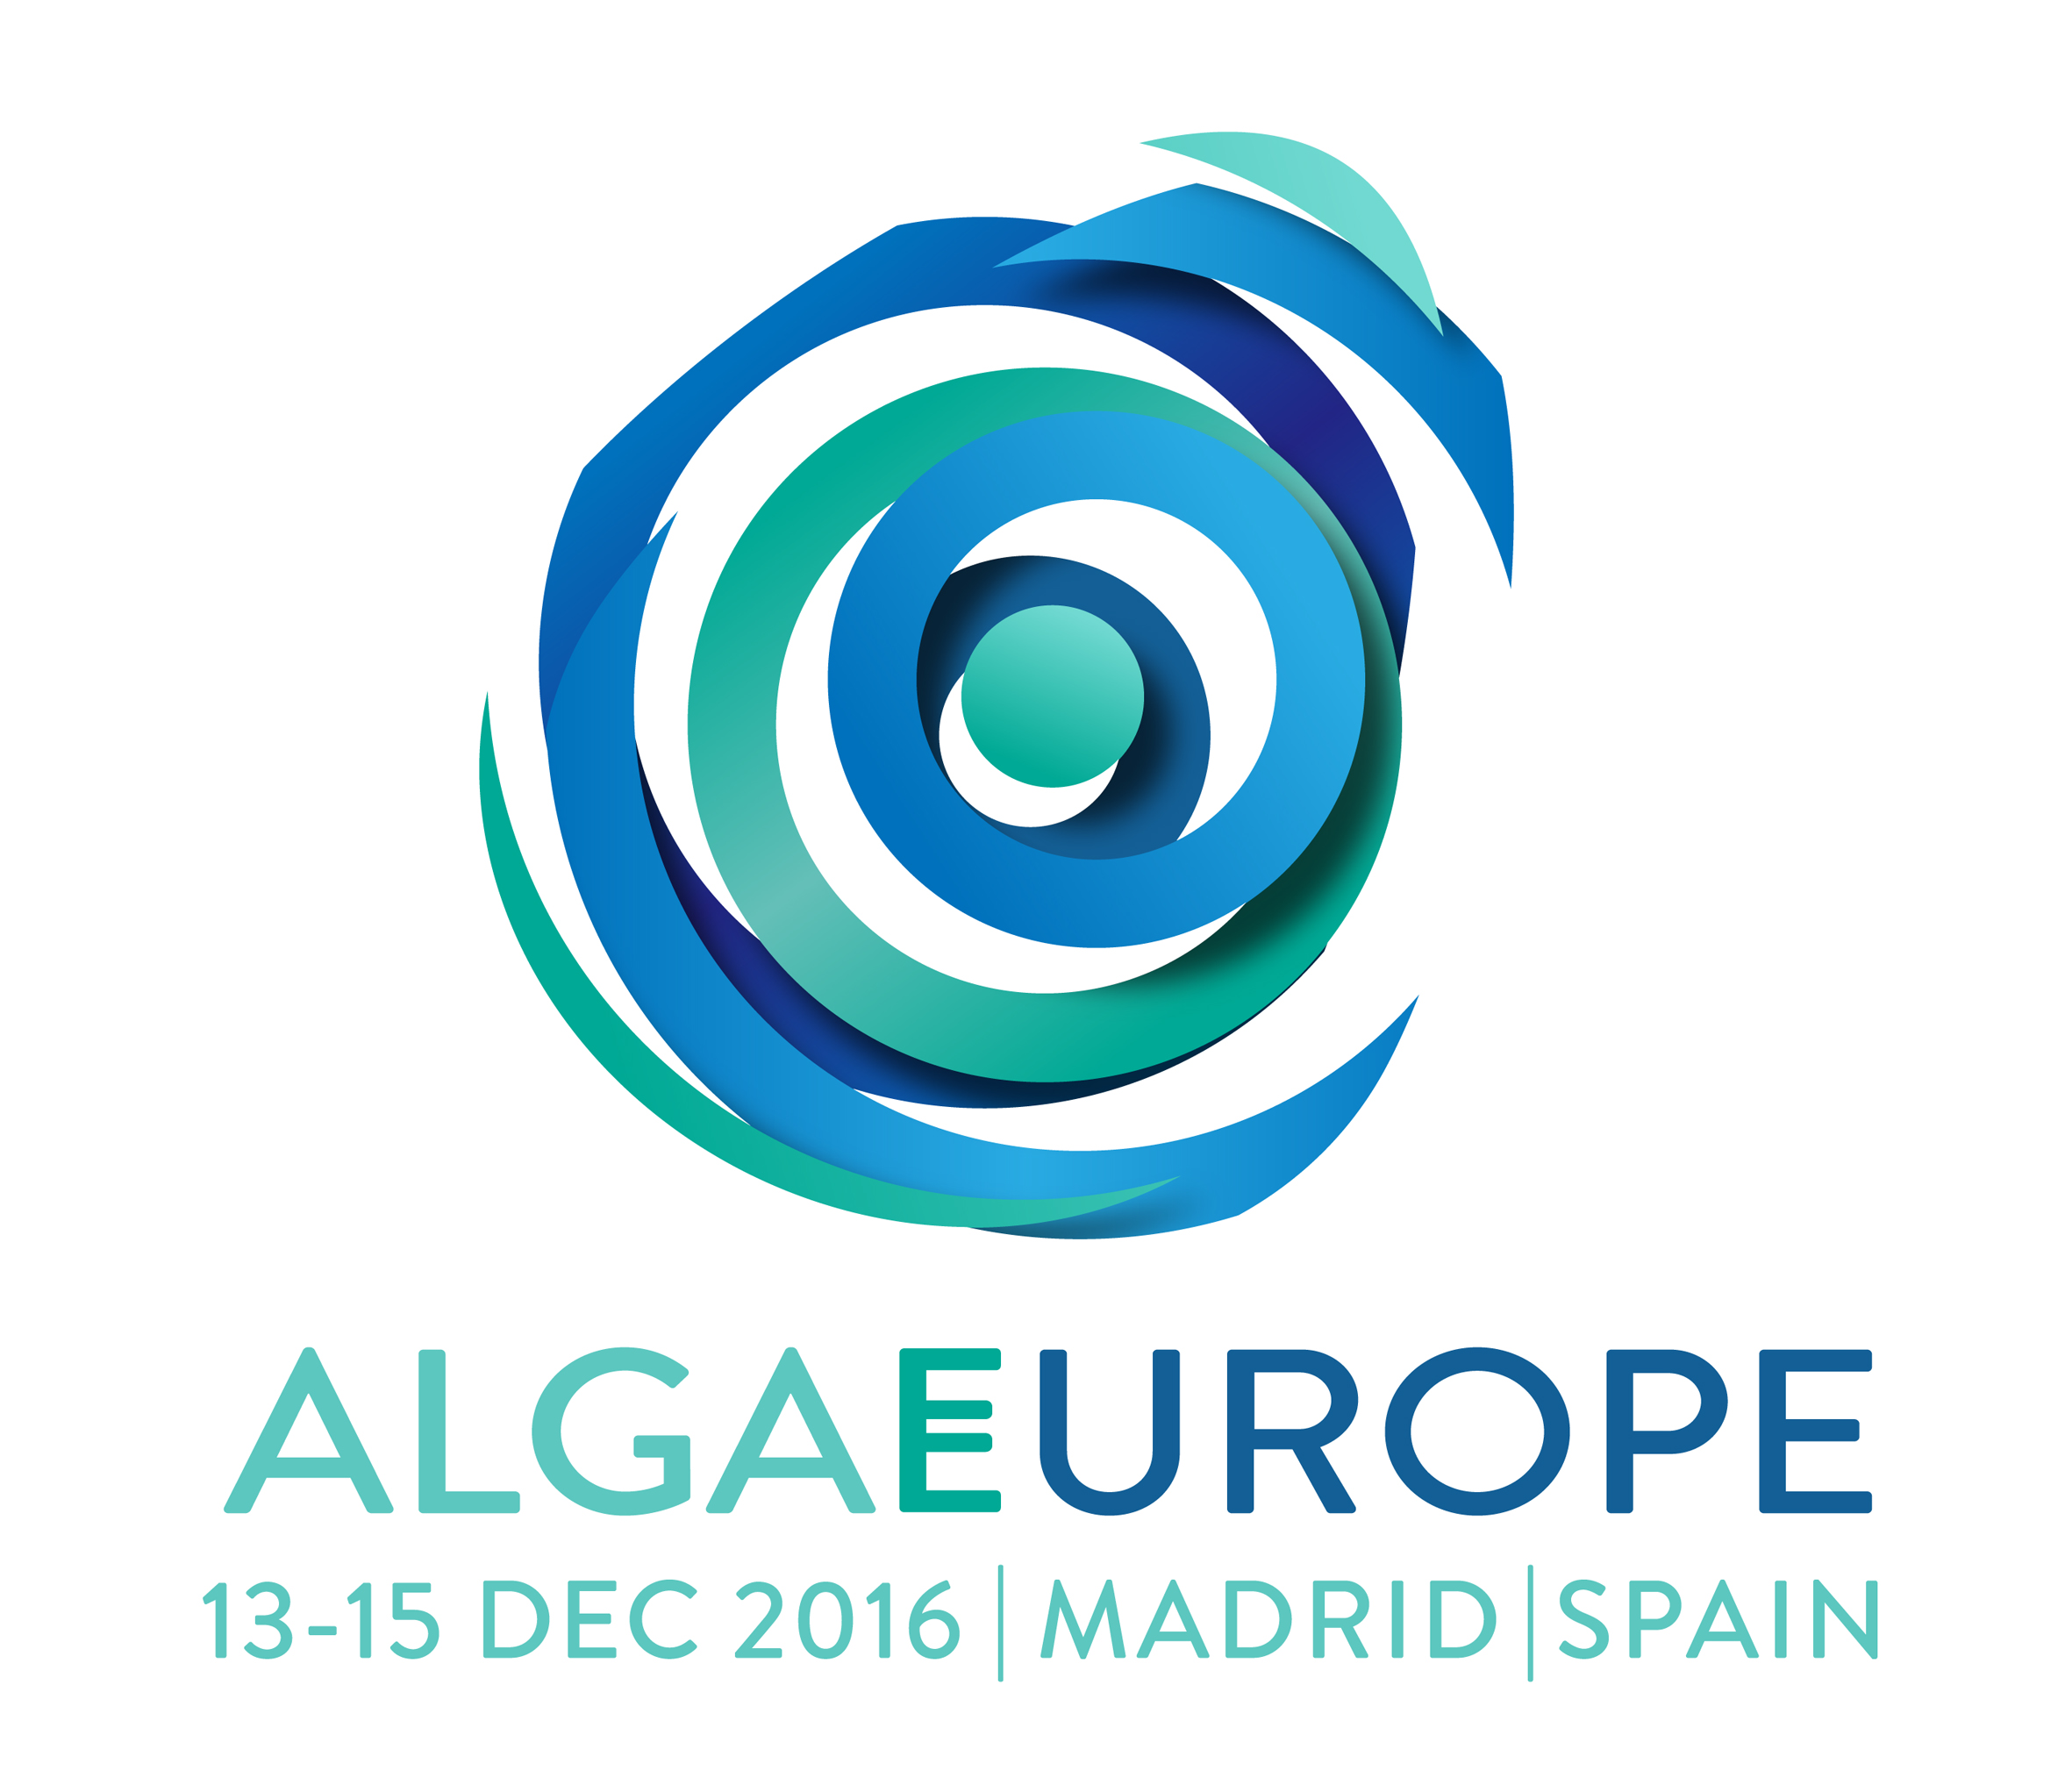 Algae Europe   —   December 13-15, 2016   —   Madrid, Spain